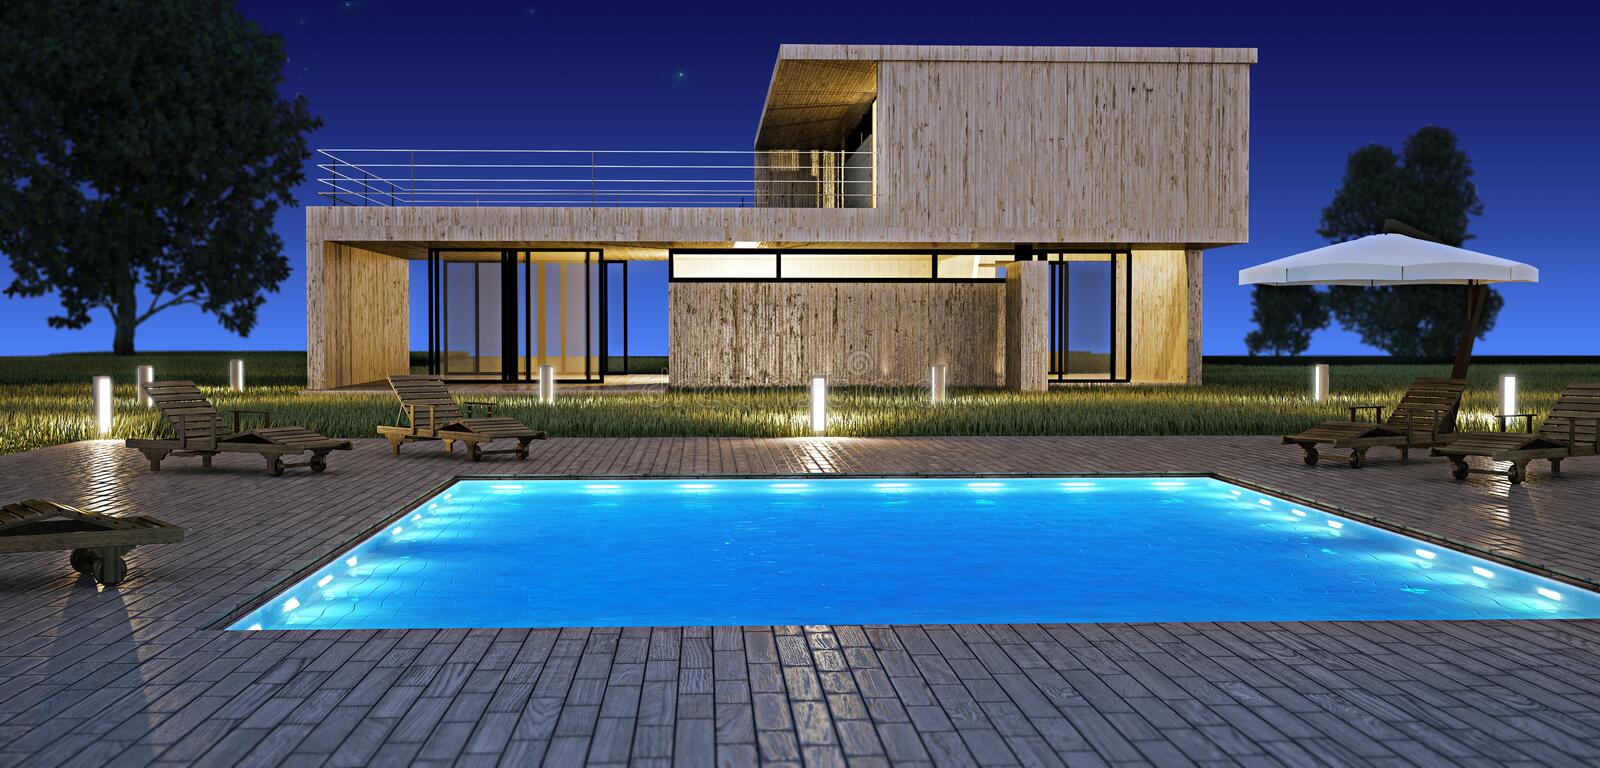 Modern house with pool stock illustration